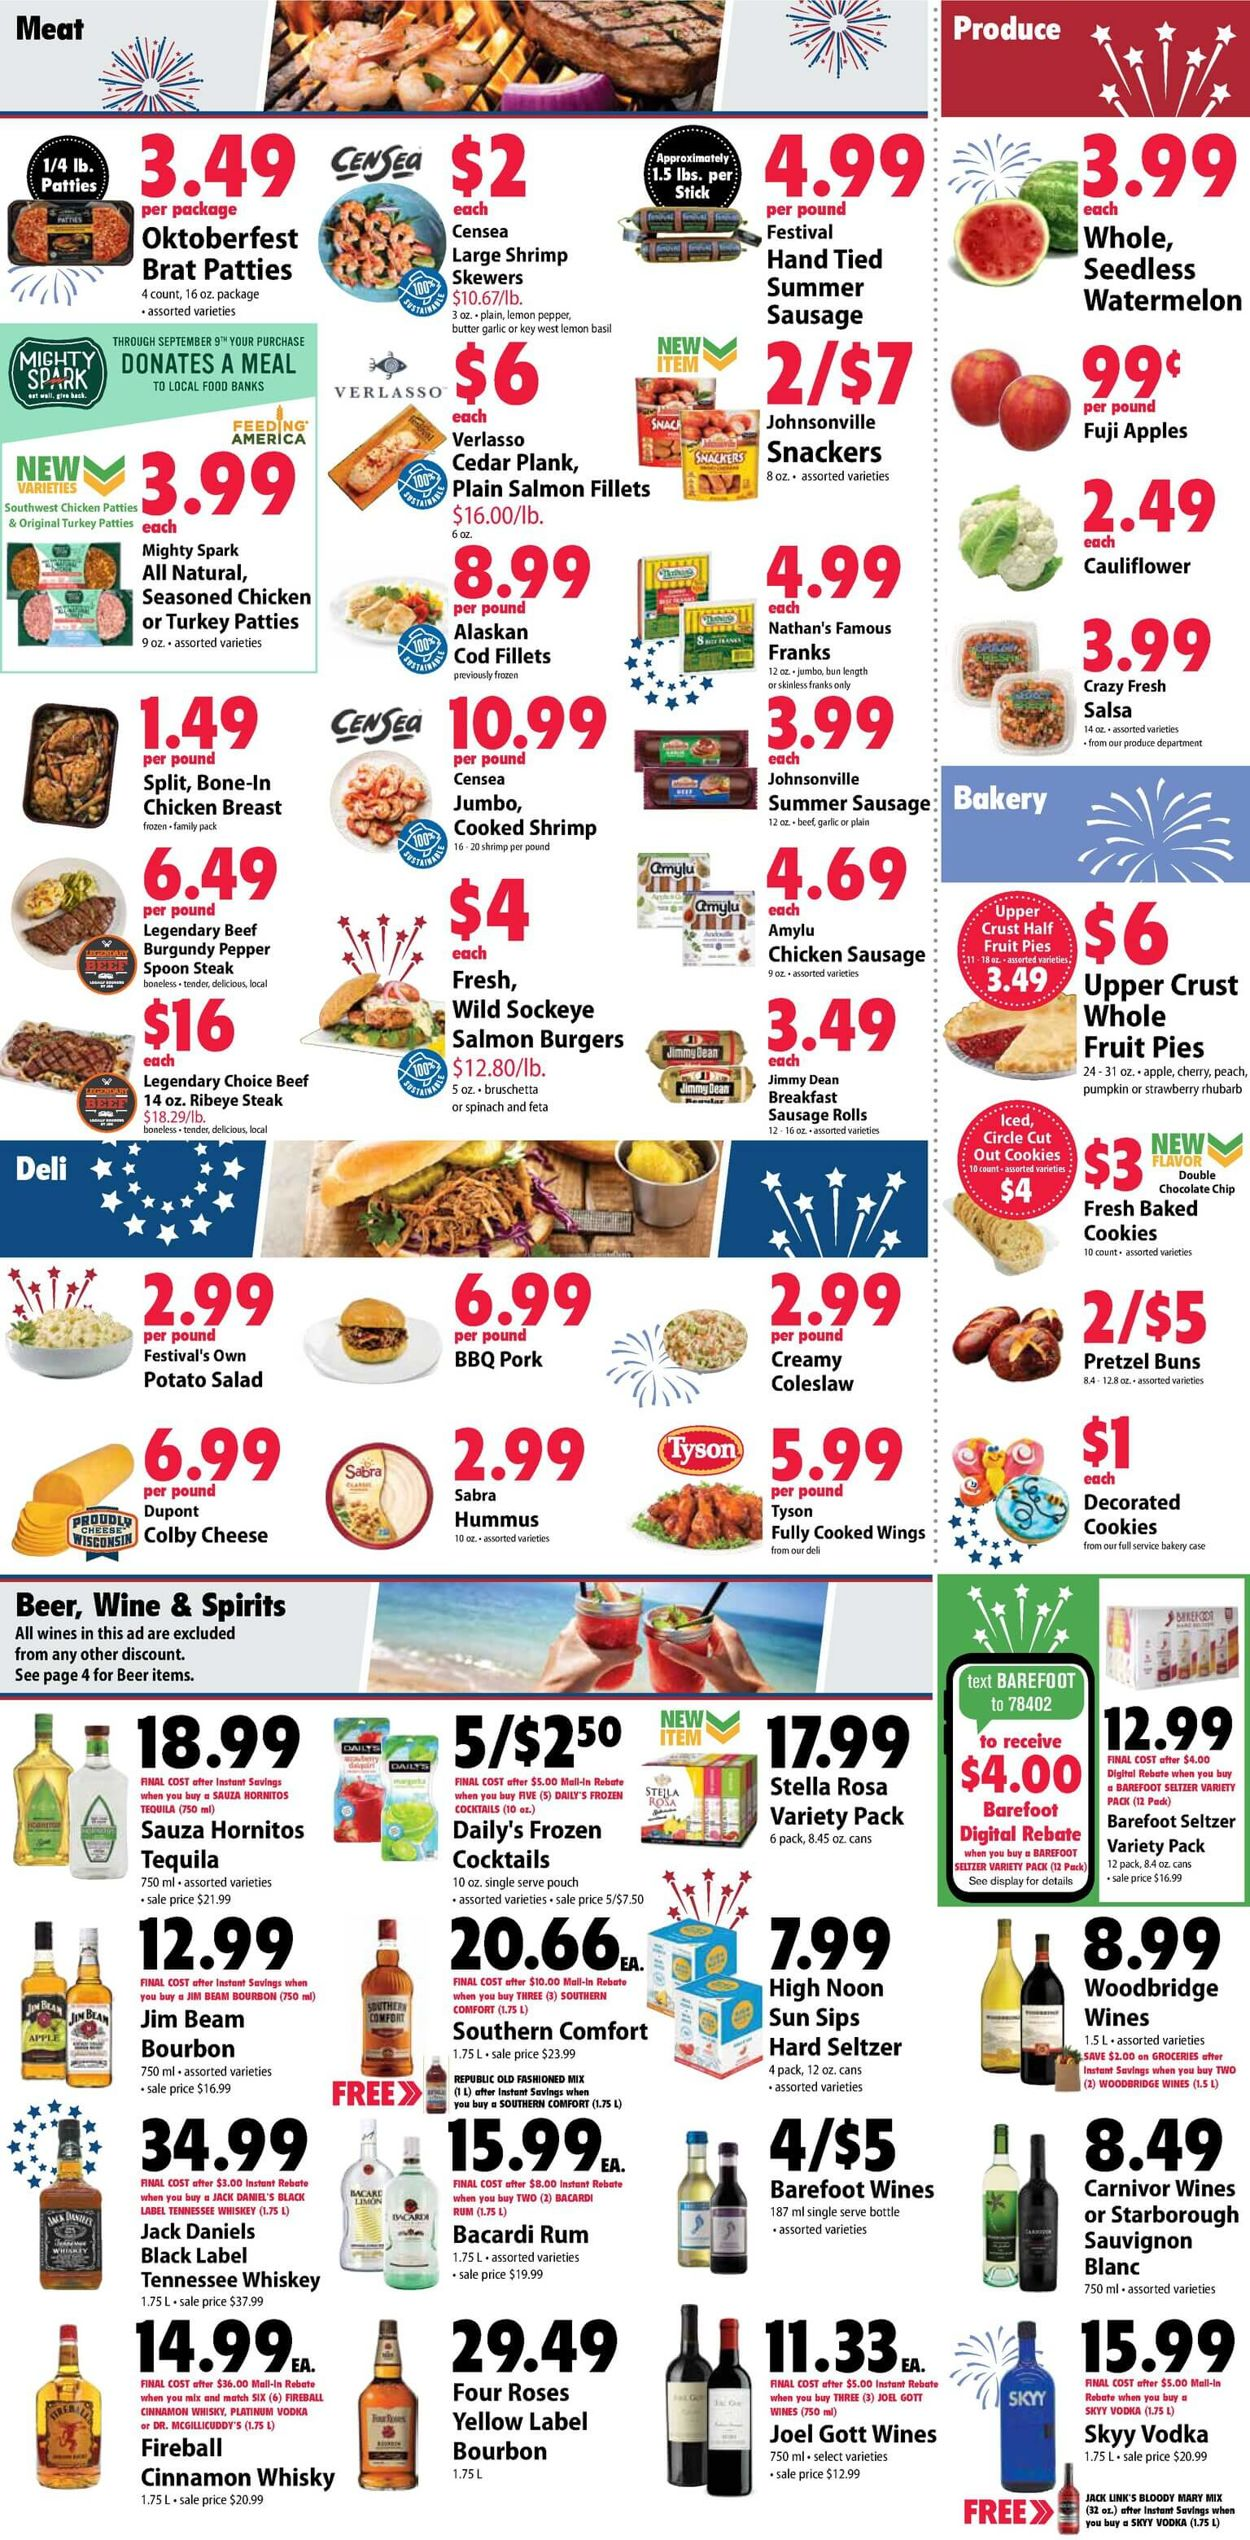 Festival Foods Weekly Ad Circular - valid 07/01-07/07/2020 (Page 2)